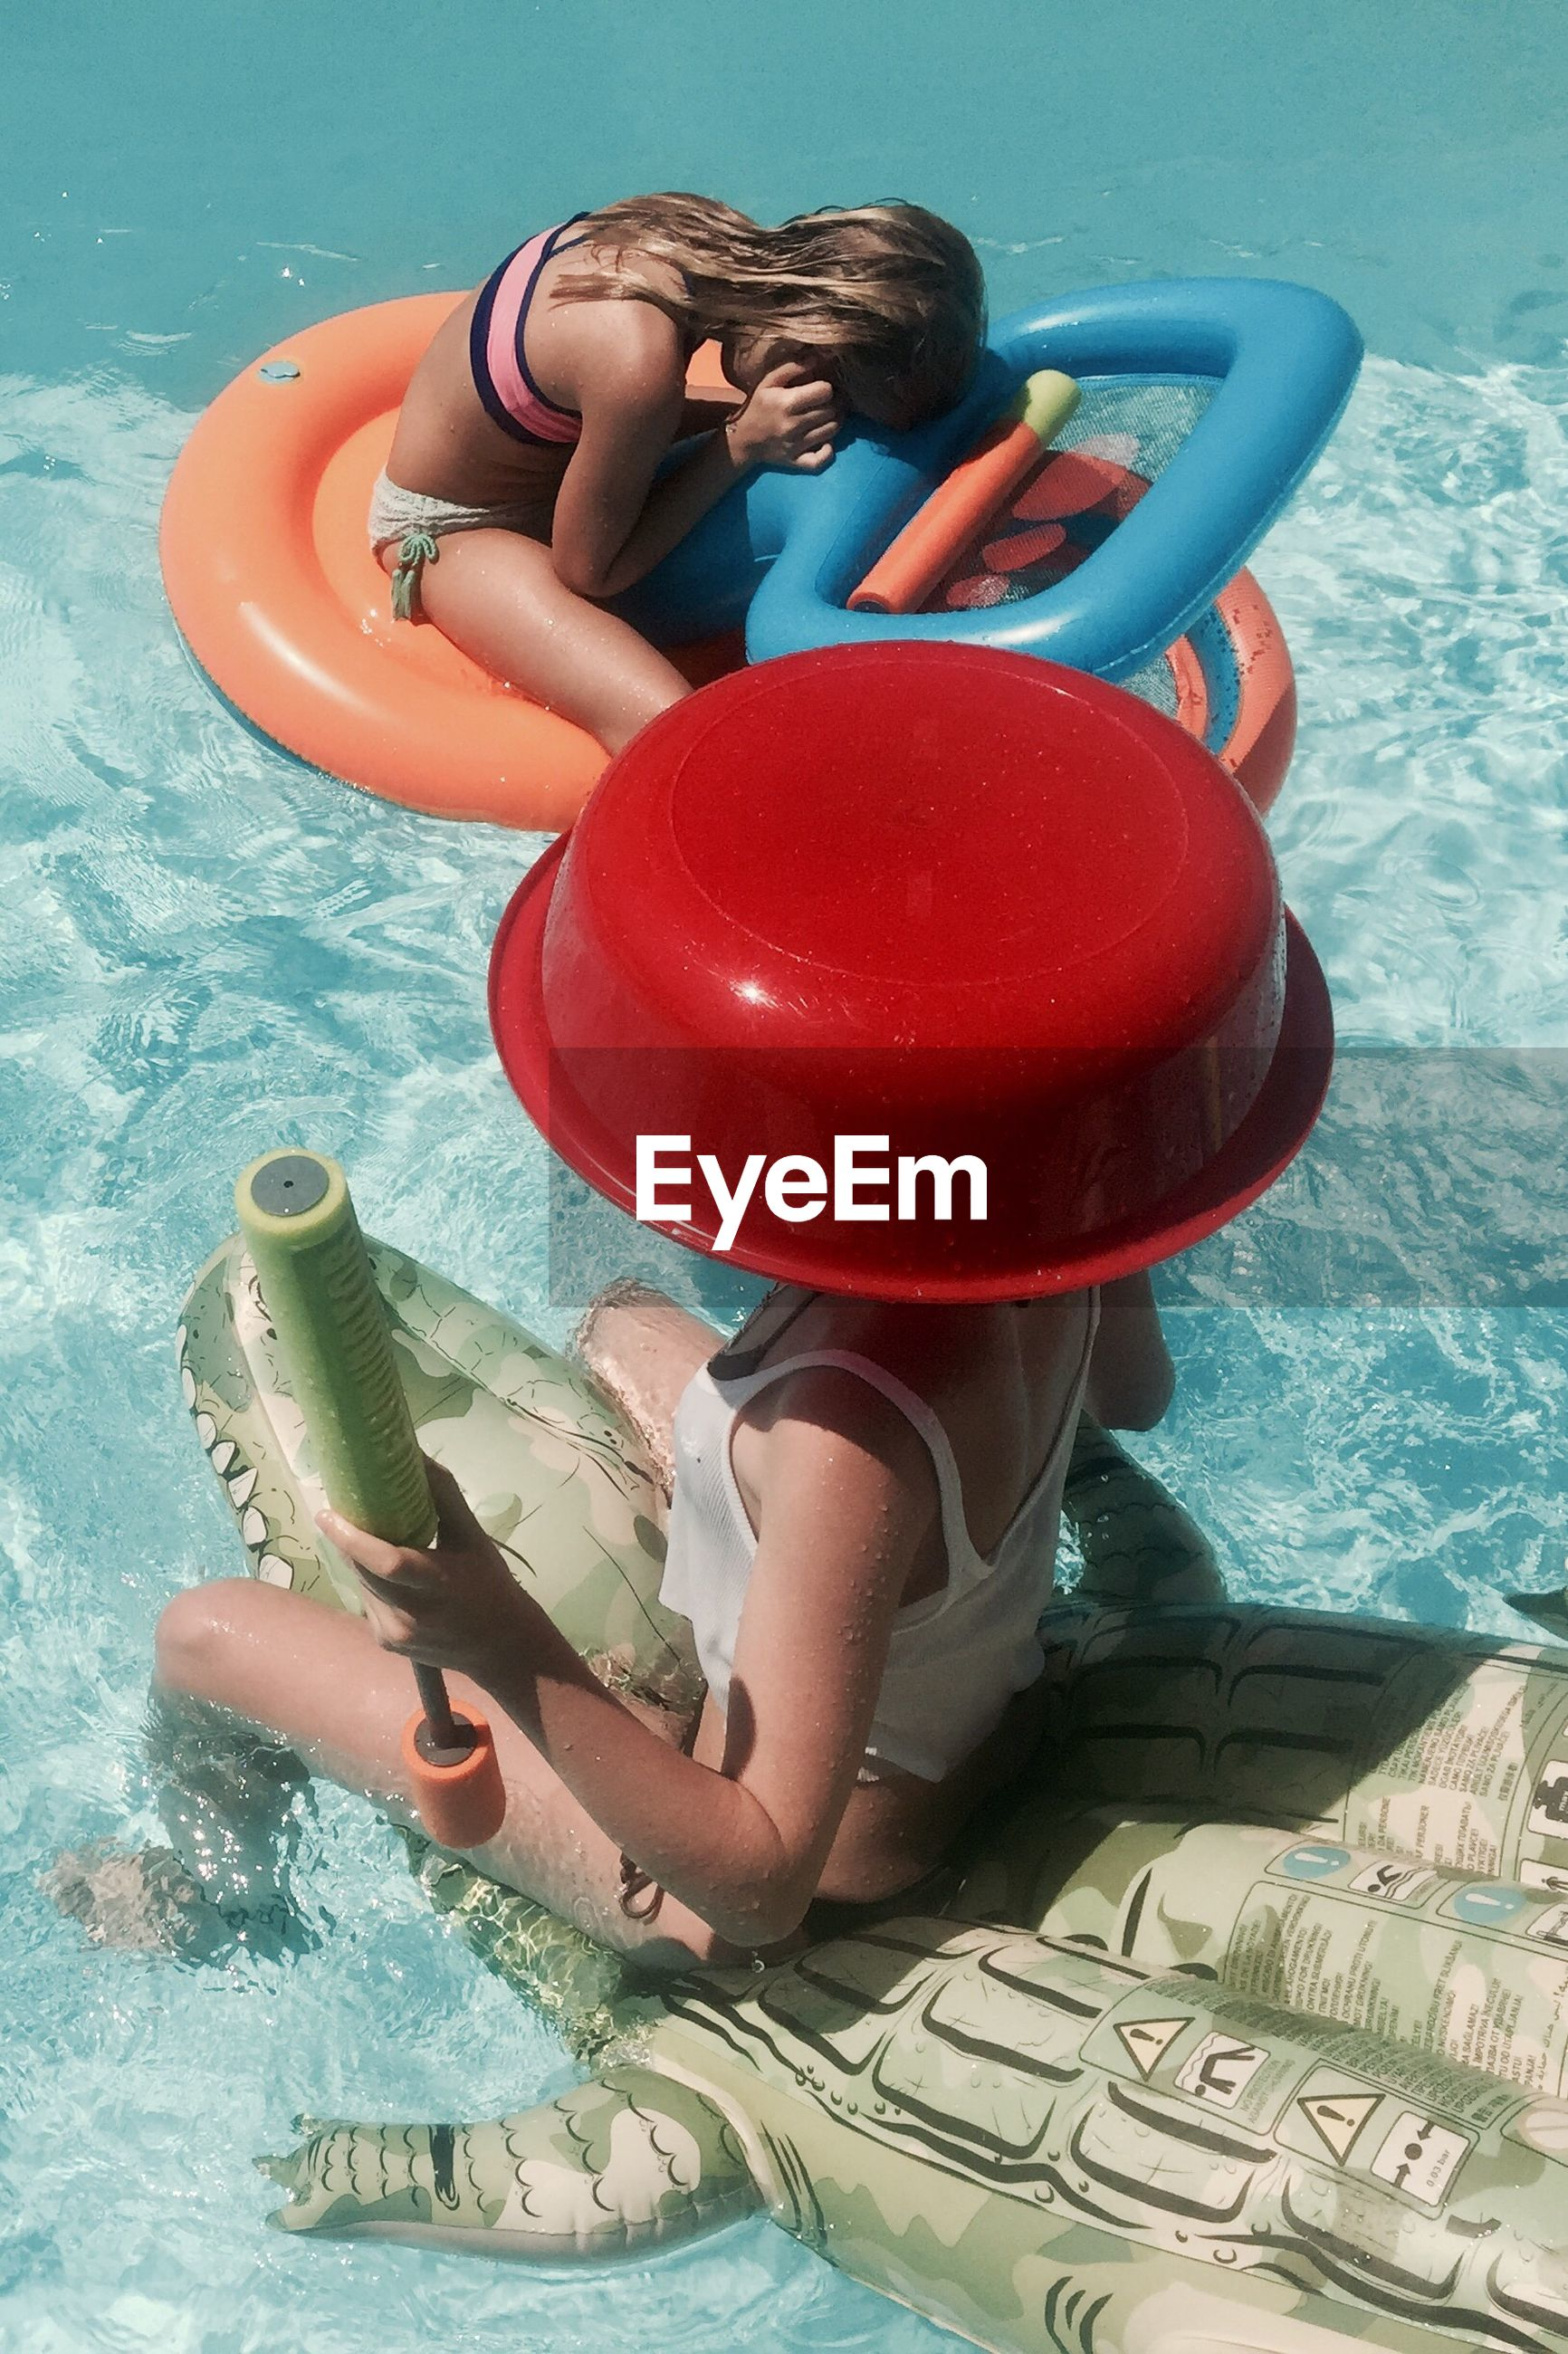 inflatable ring, childhood, inflatable, water, real people, leisure activity, swimming pool, full length, two people, day, fun, happiness, togetherness, floating on water, sitting, elementary age, outdoors, boys, playing, lifestyles, bonding, girls, red, smiling, water slide, young adult